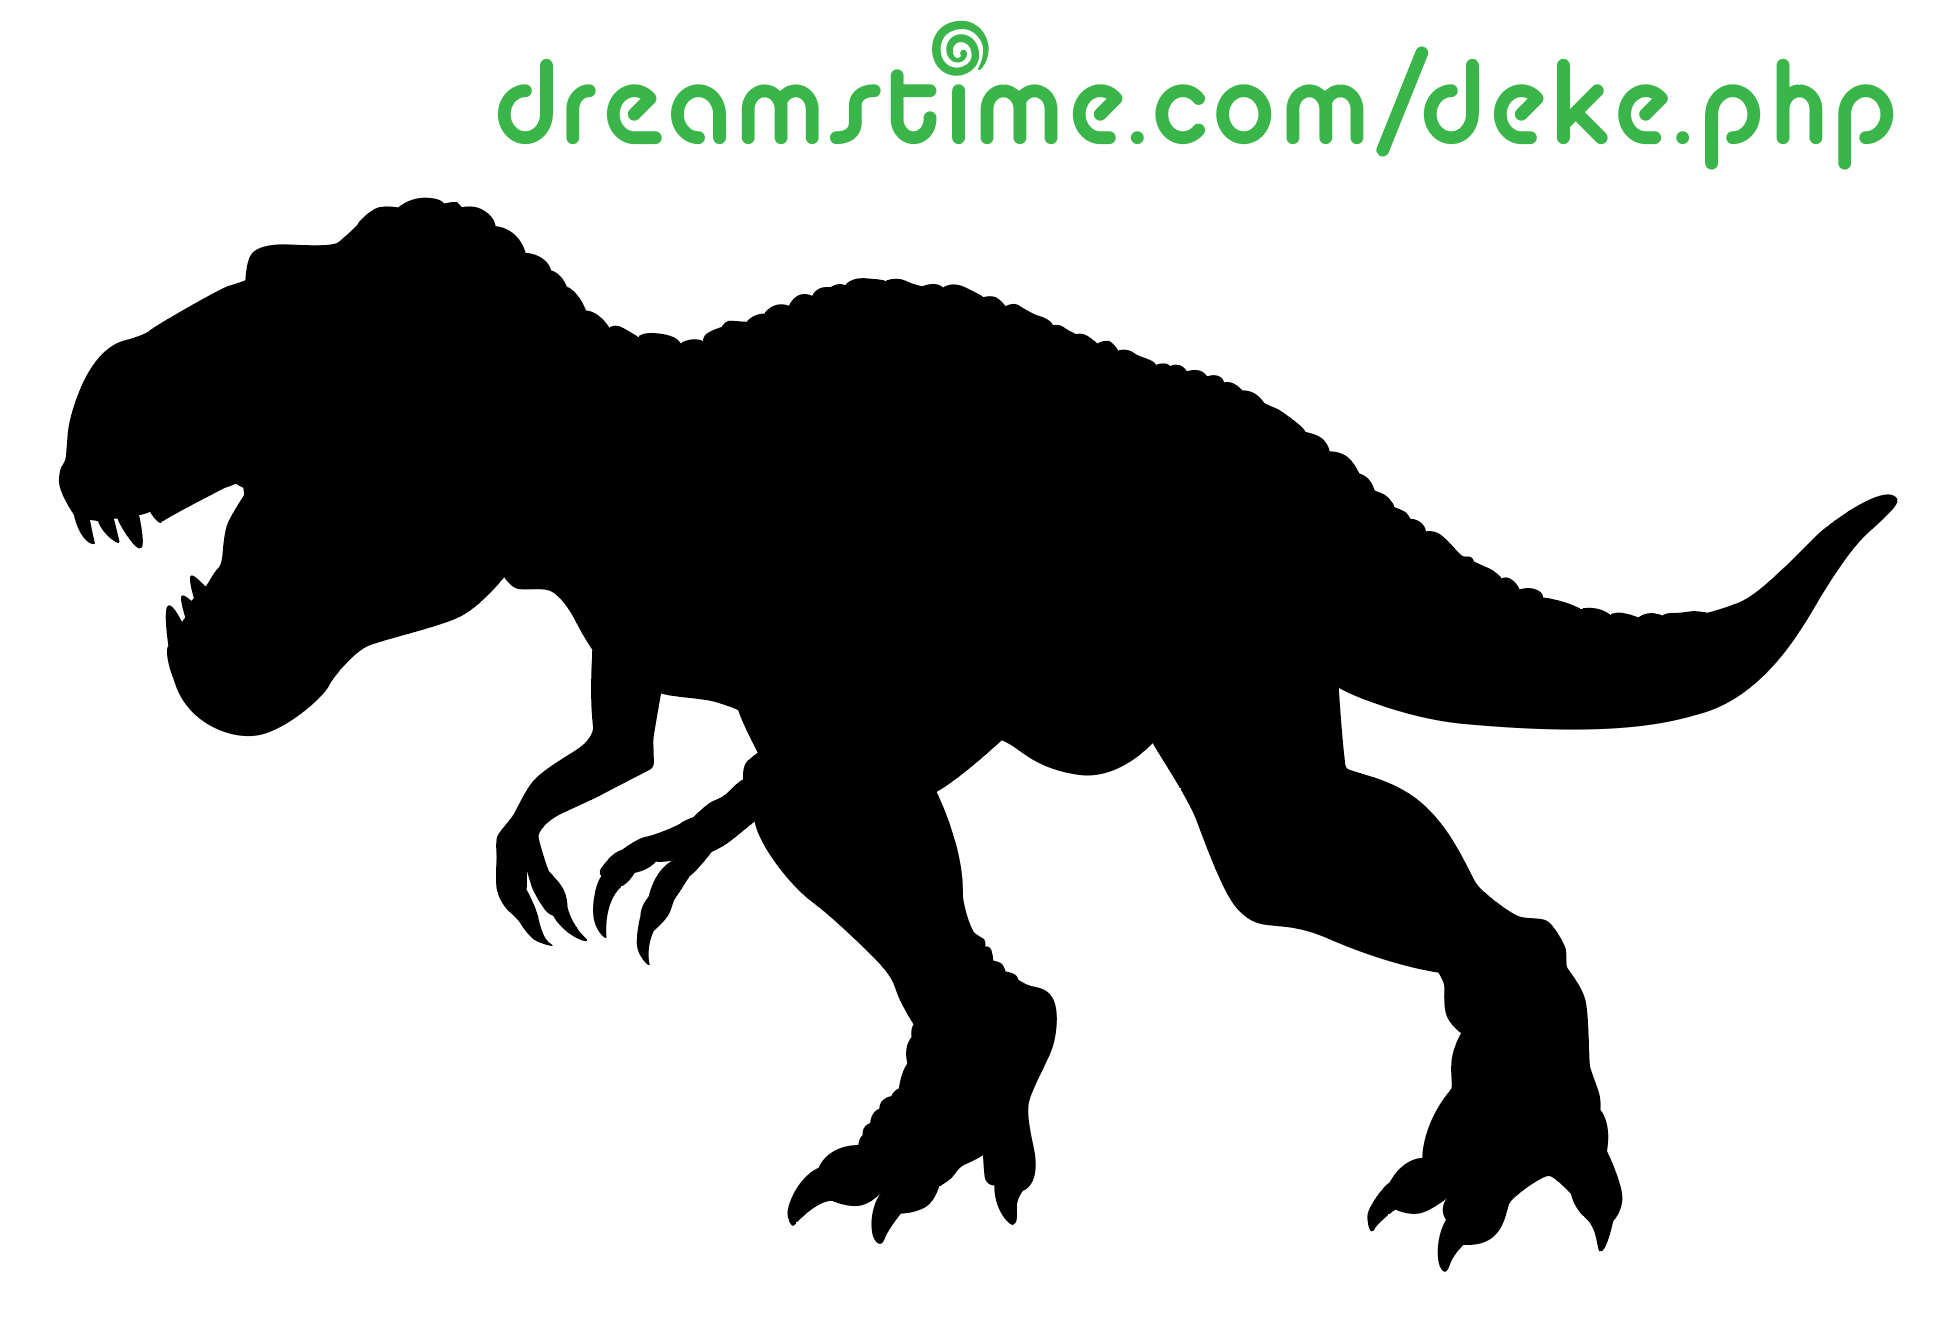 A vector T-rex courtesy of Dreamstime.com